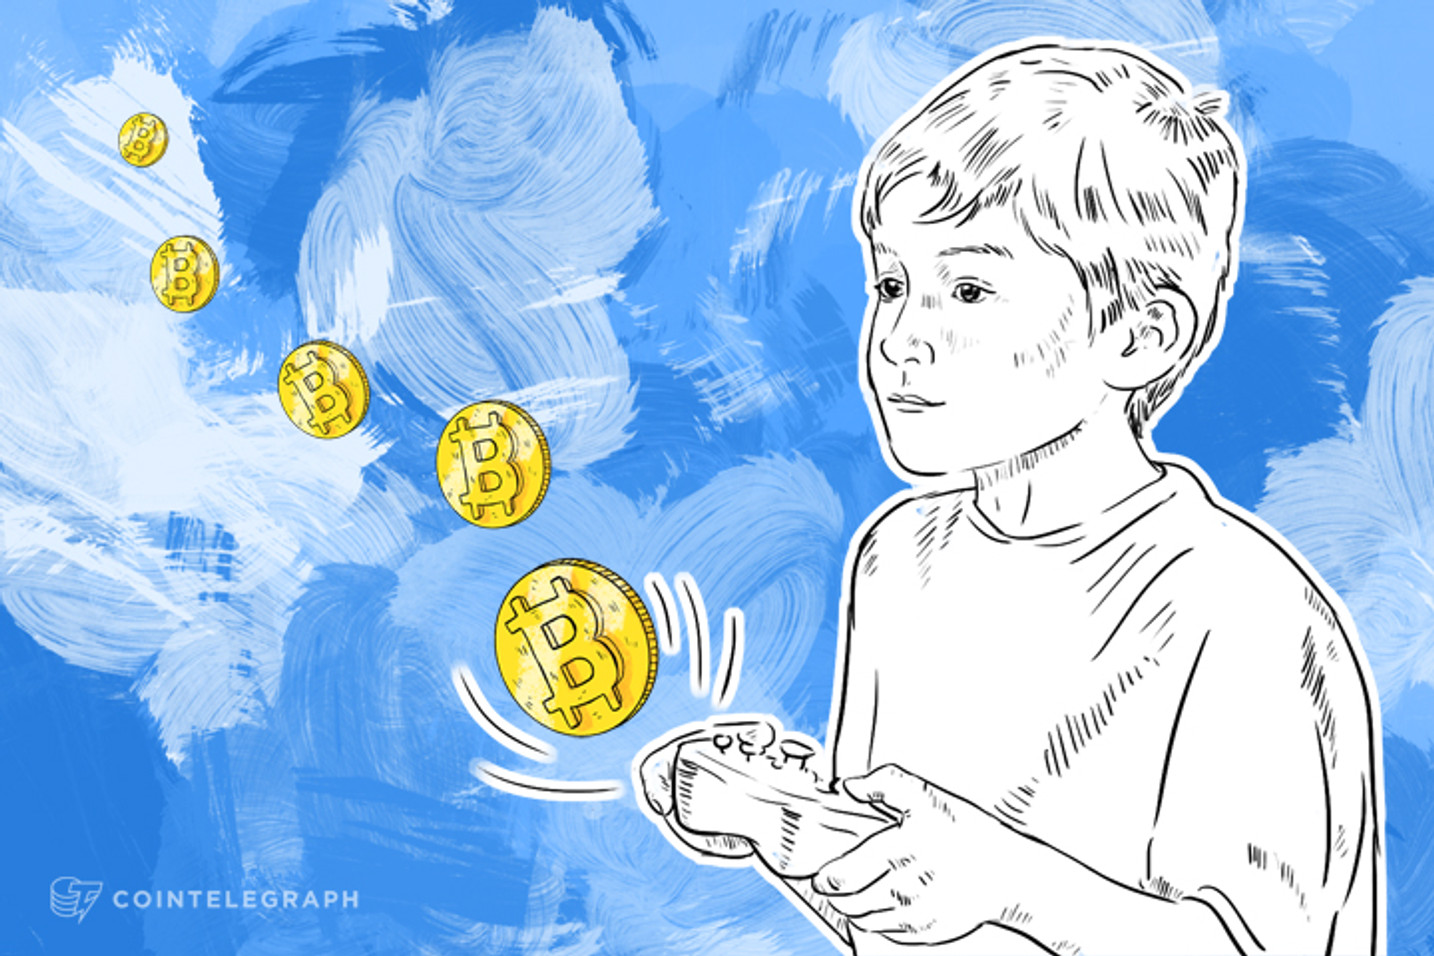 Coinding Launches Bitcoin Gaming Hackathon